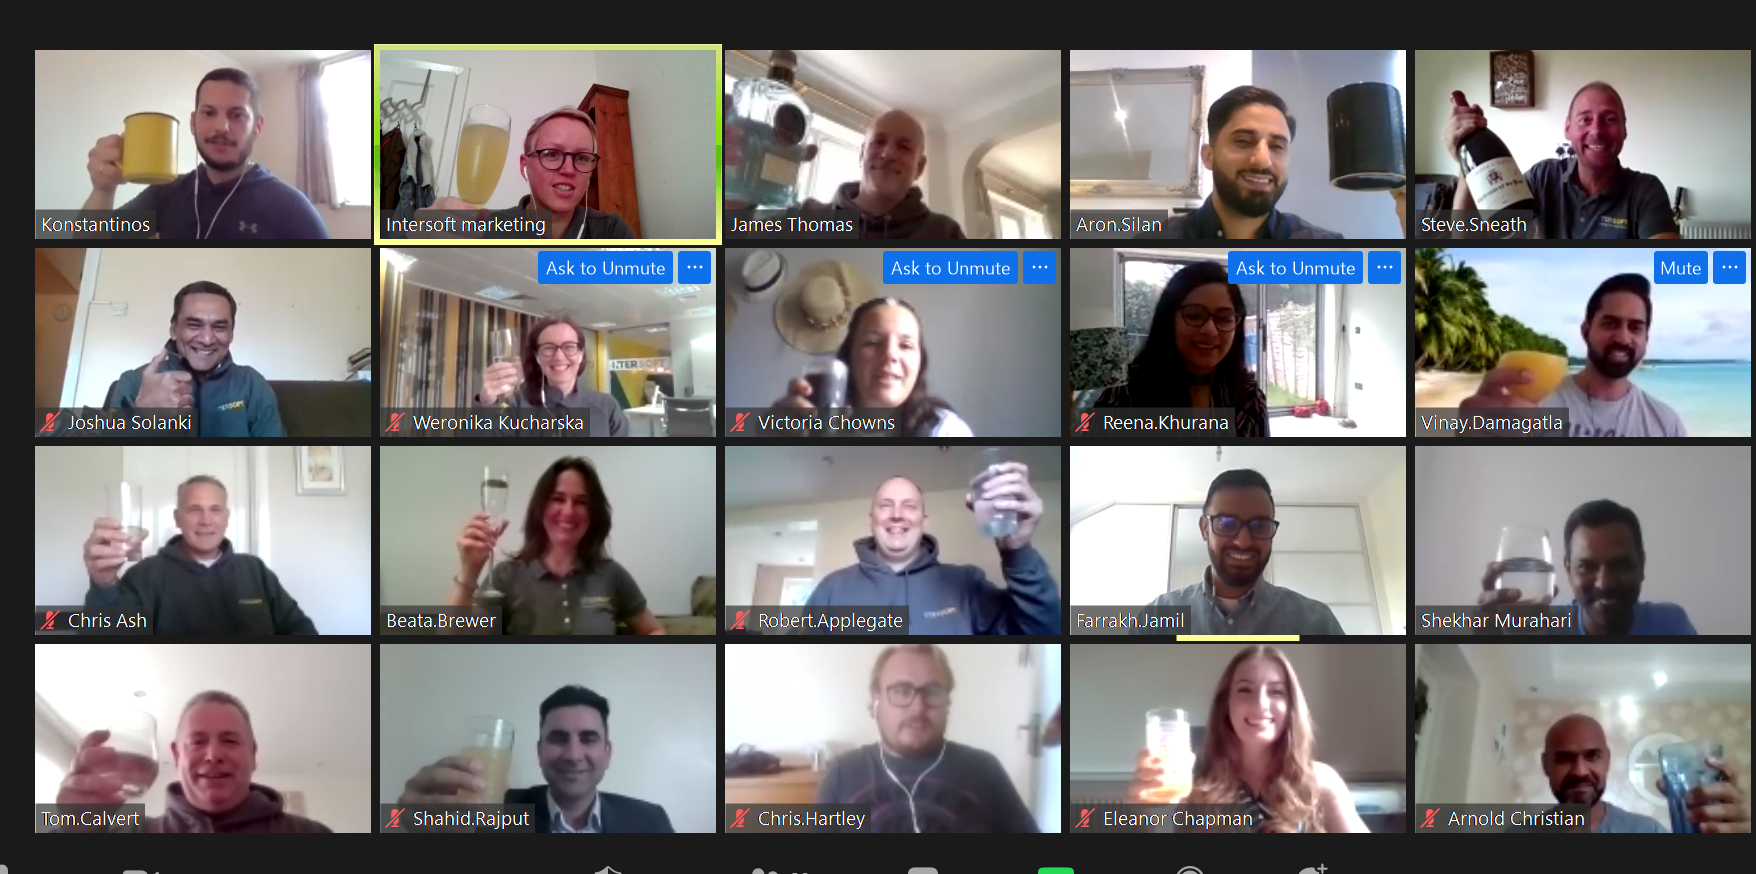 The Intersoft team on Zoom